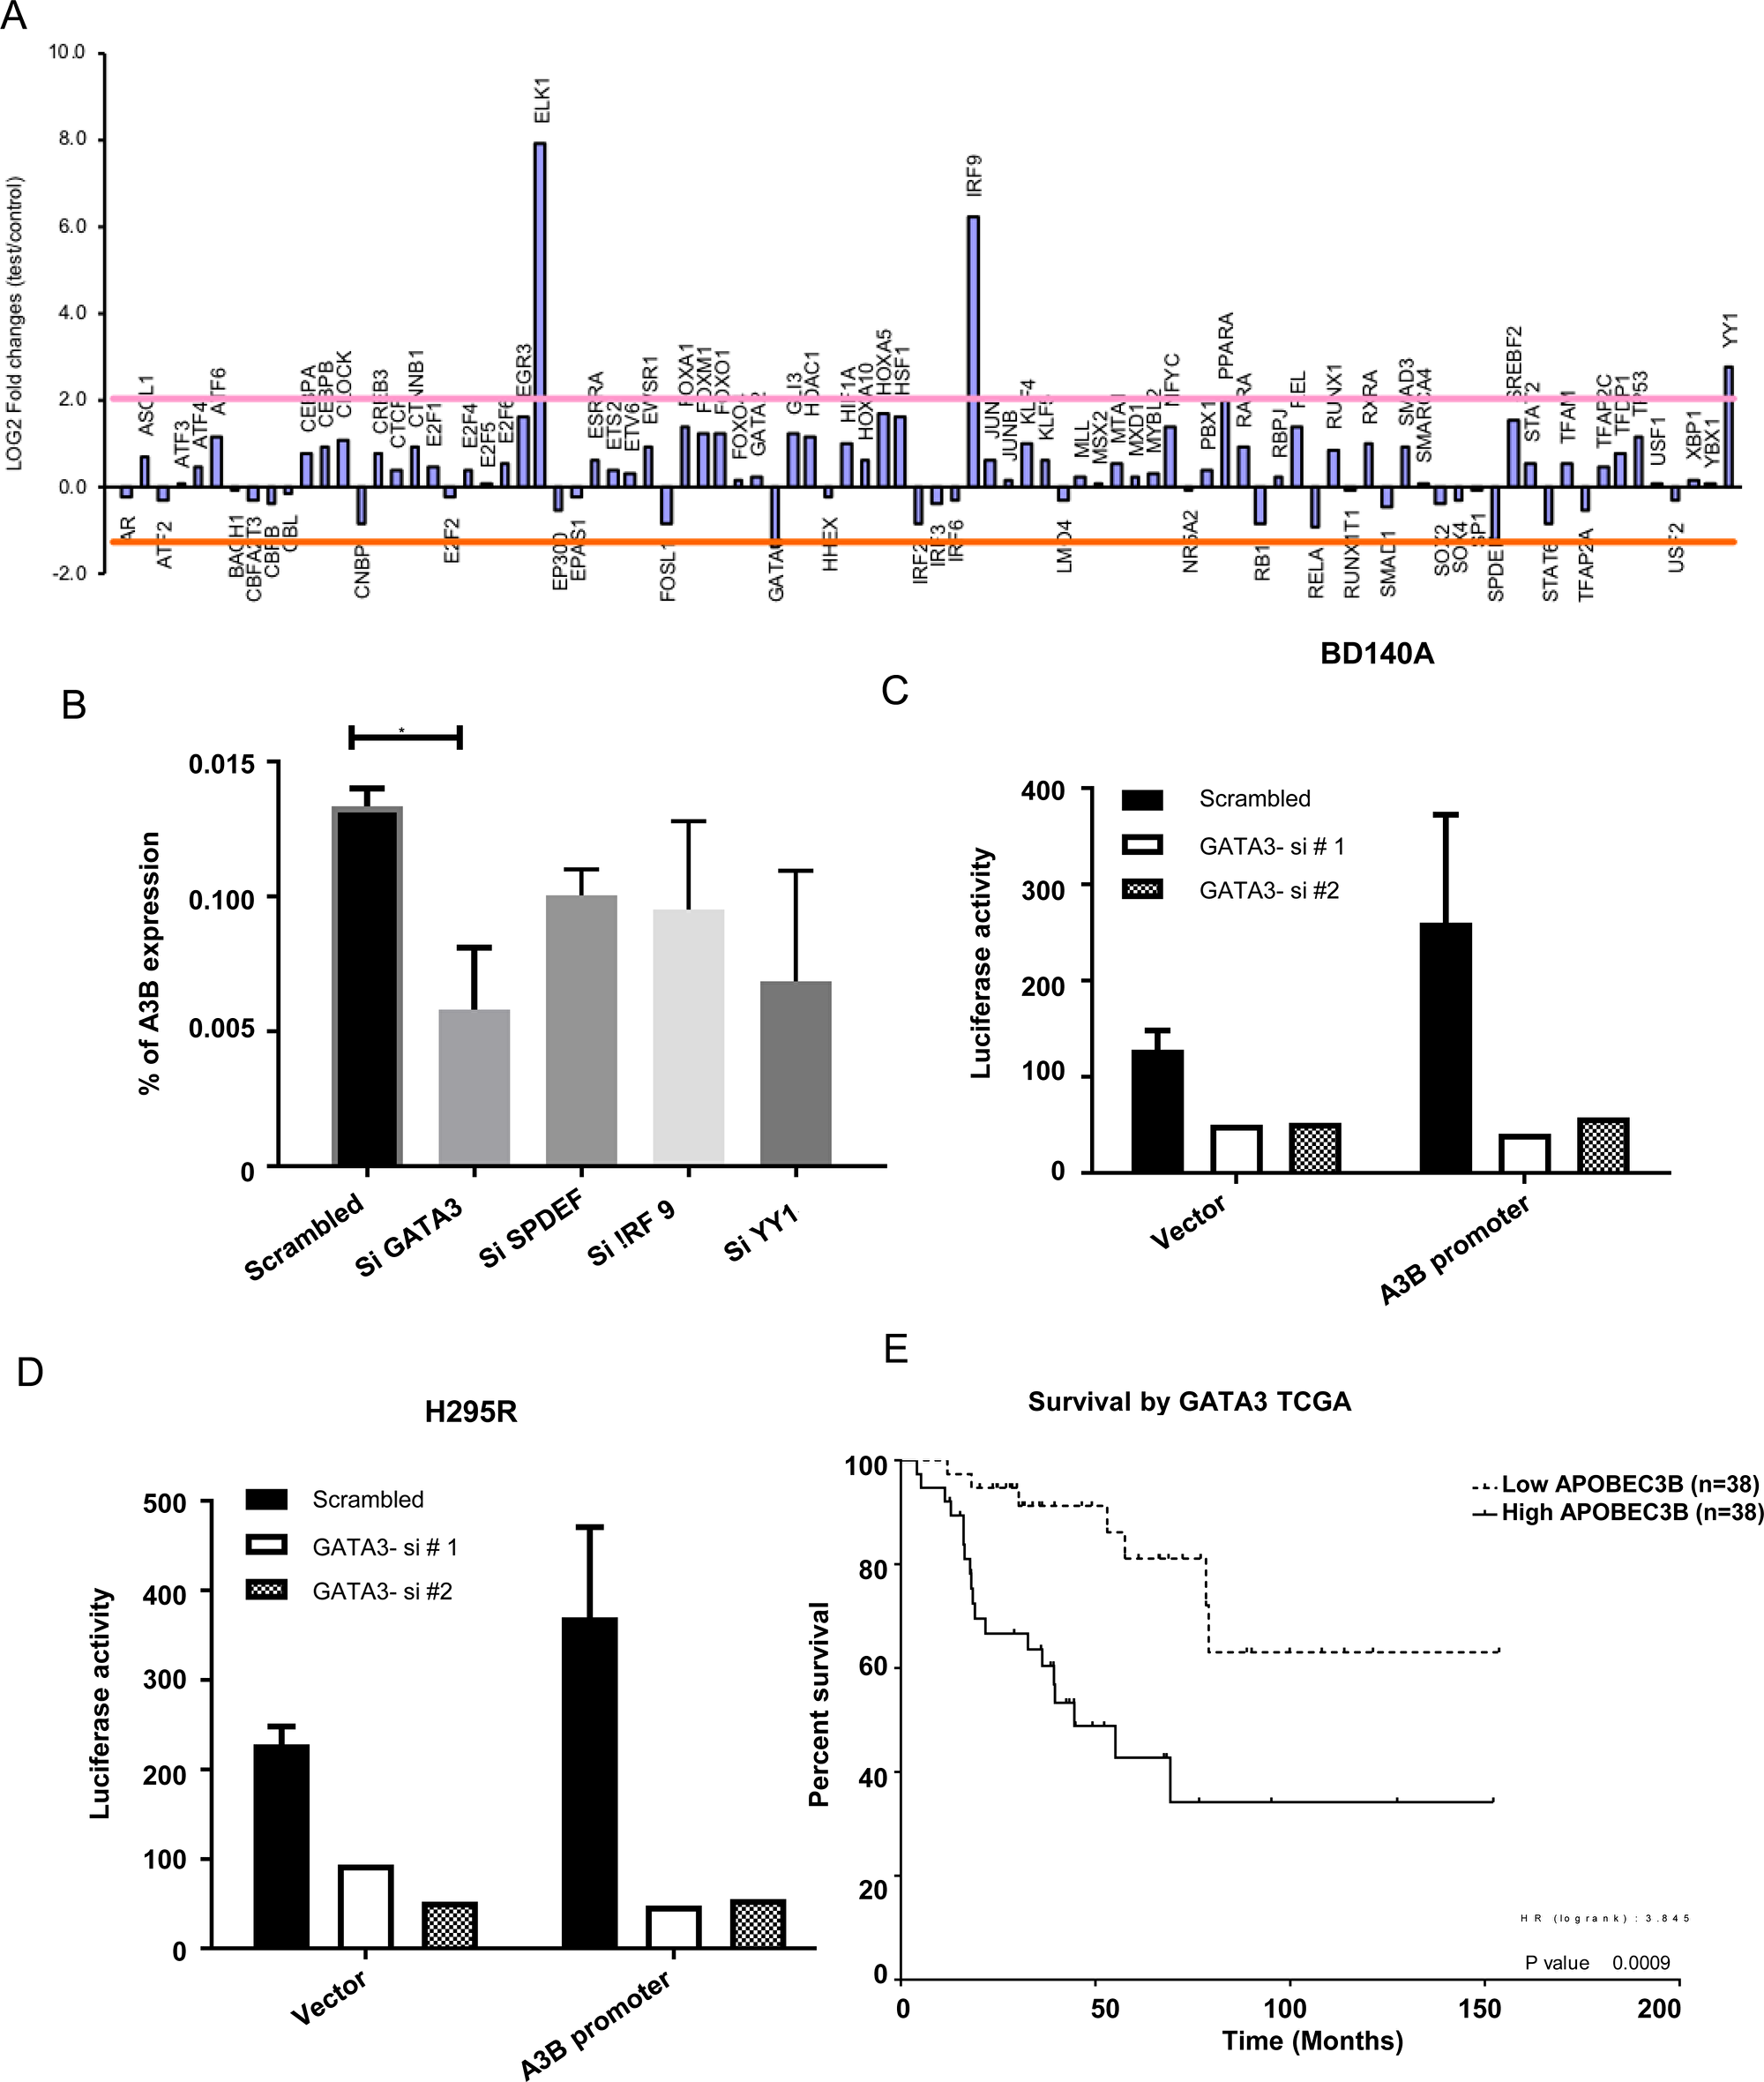 APOBEC3B gene expression is regulated by GATA3.